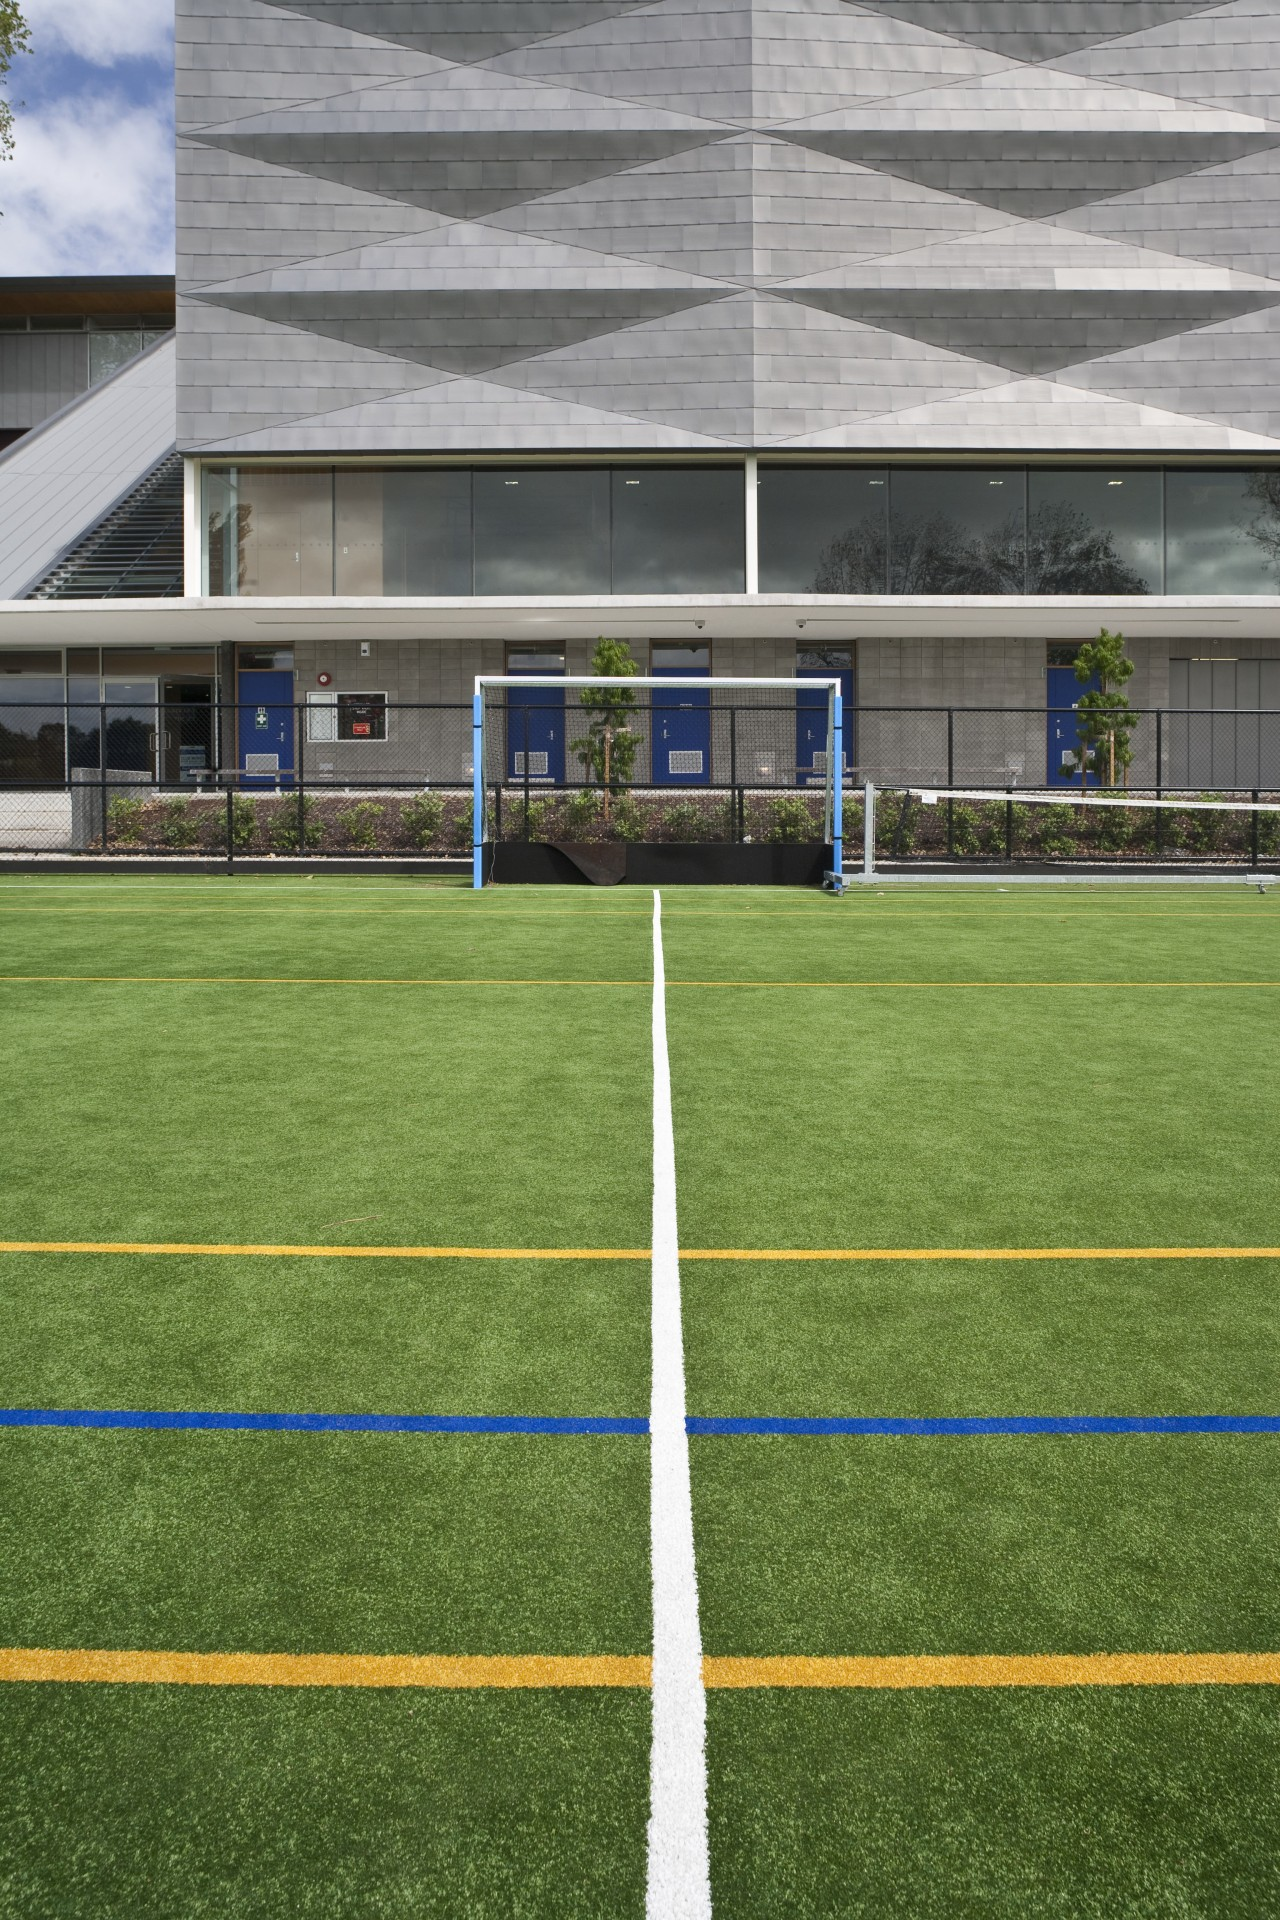 Exterior view of the St Kents' sporting facility artificial turf, ball game, grass, lawn, line, plant, soccer specific stadium, sport venue, sports, stadium, structure, team sport, green, gray